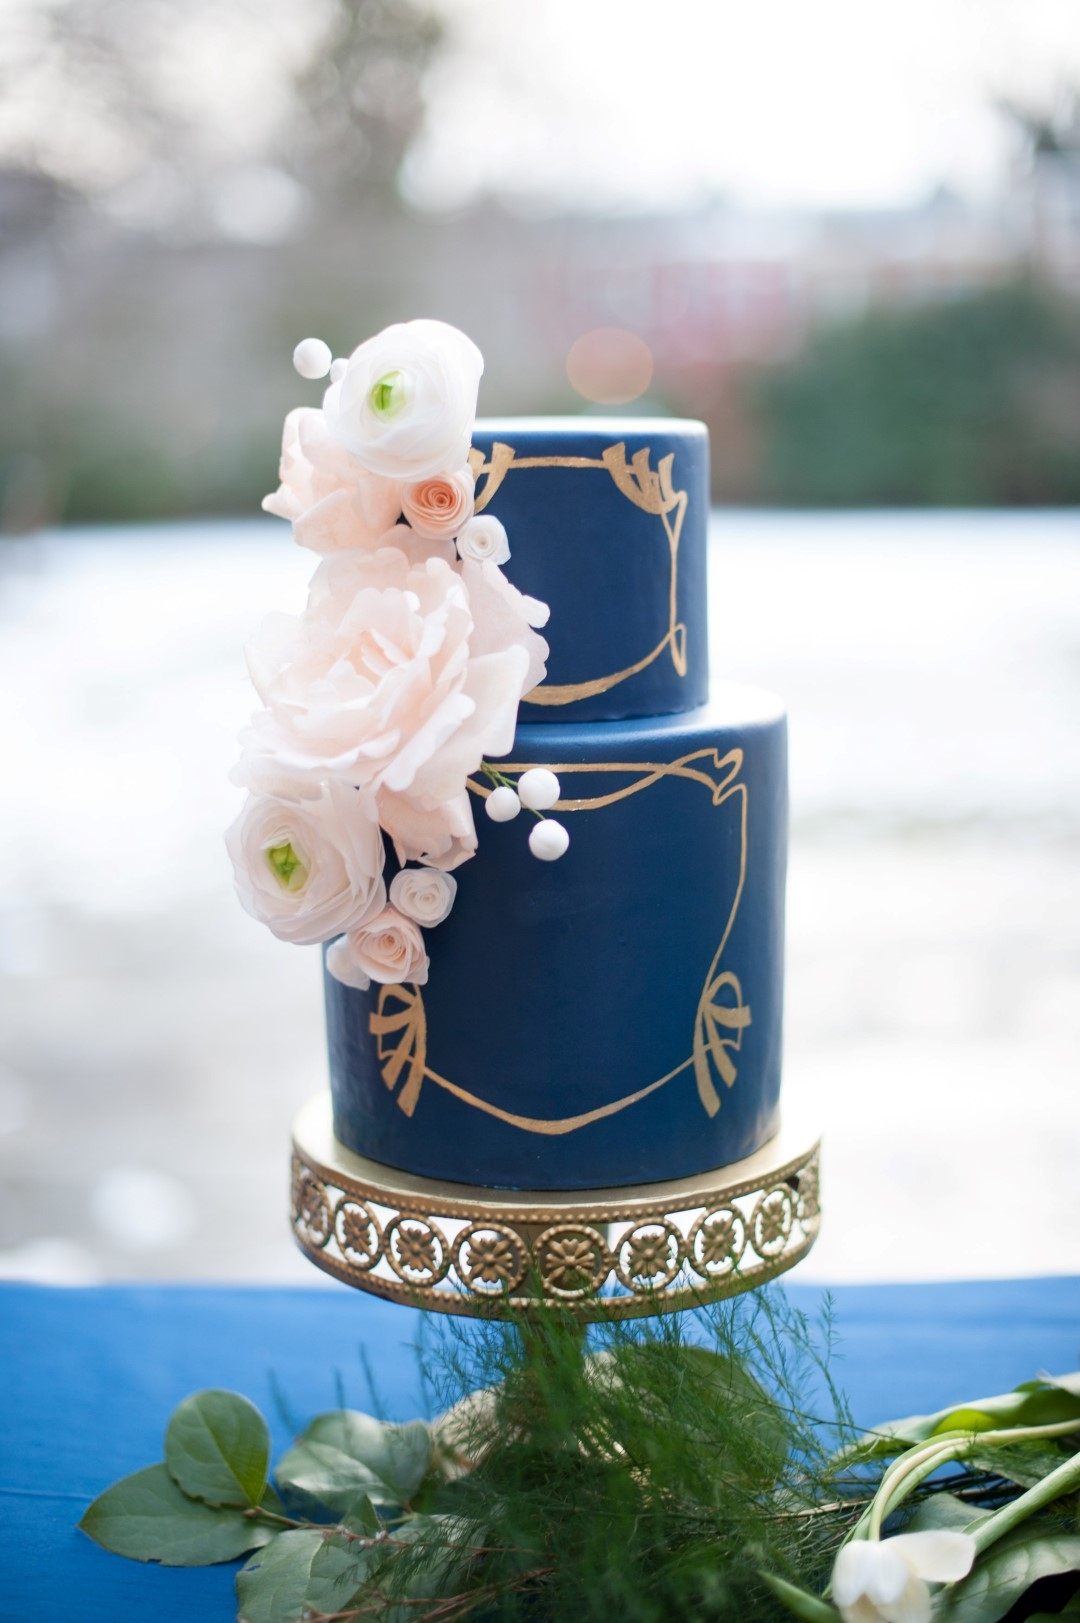 Art Nouveau Wedding Cakes CakeCentralcom - Wedding Cake Richmond Va